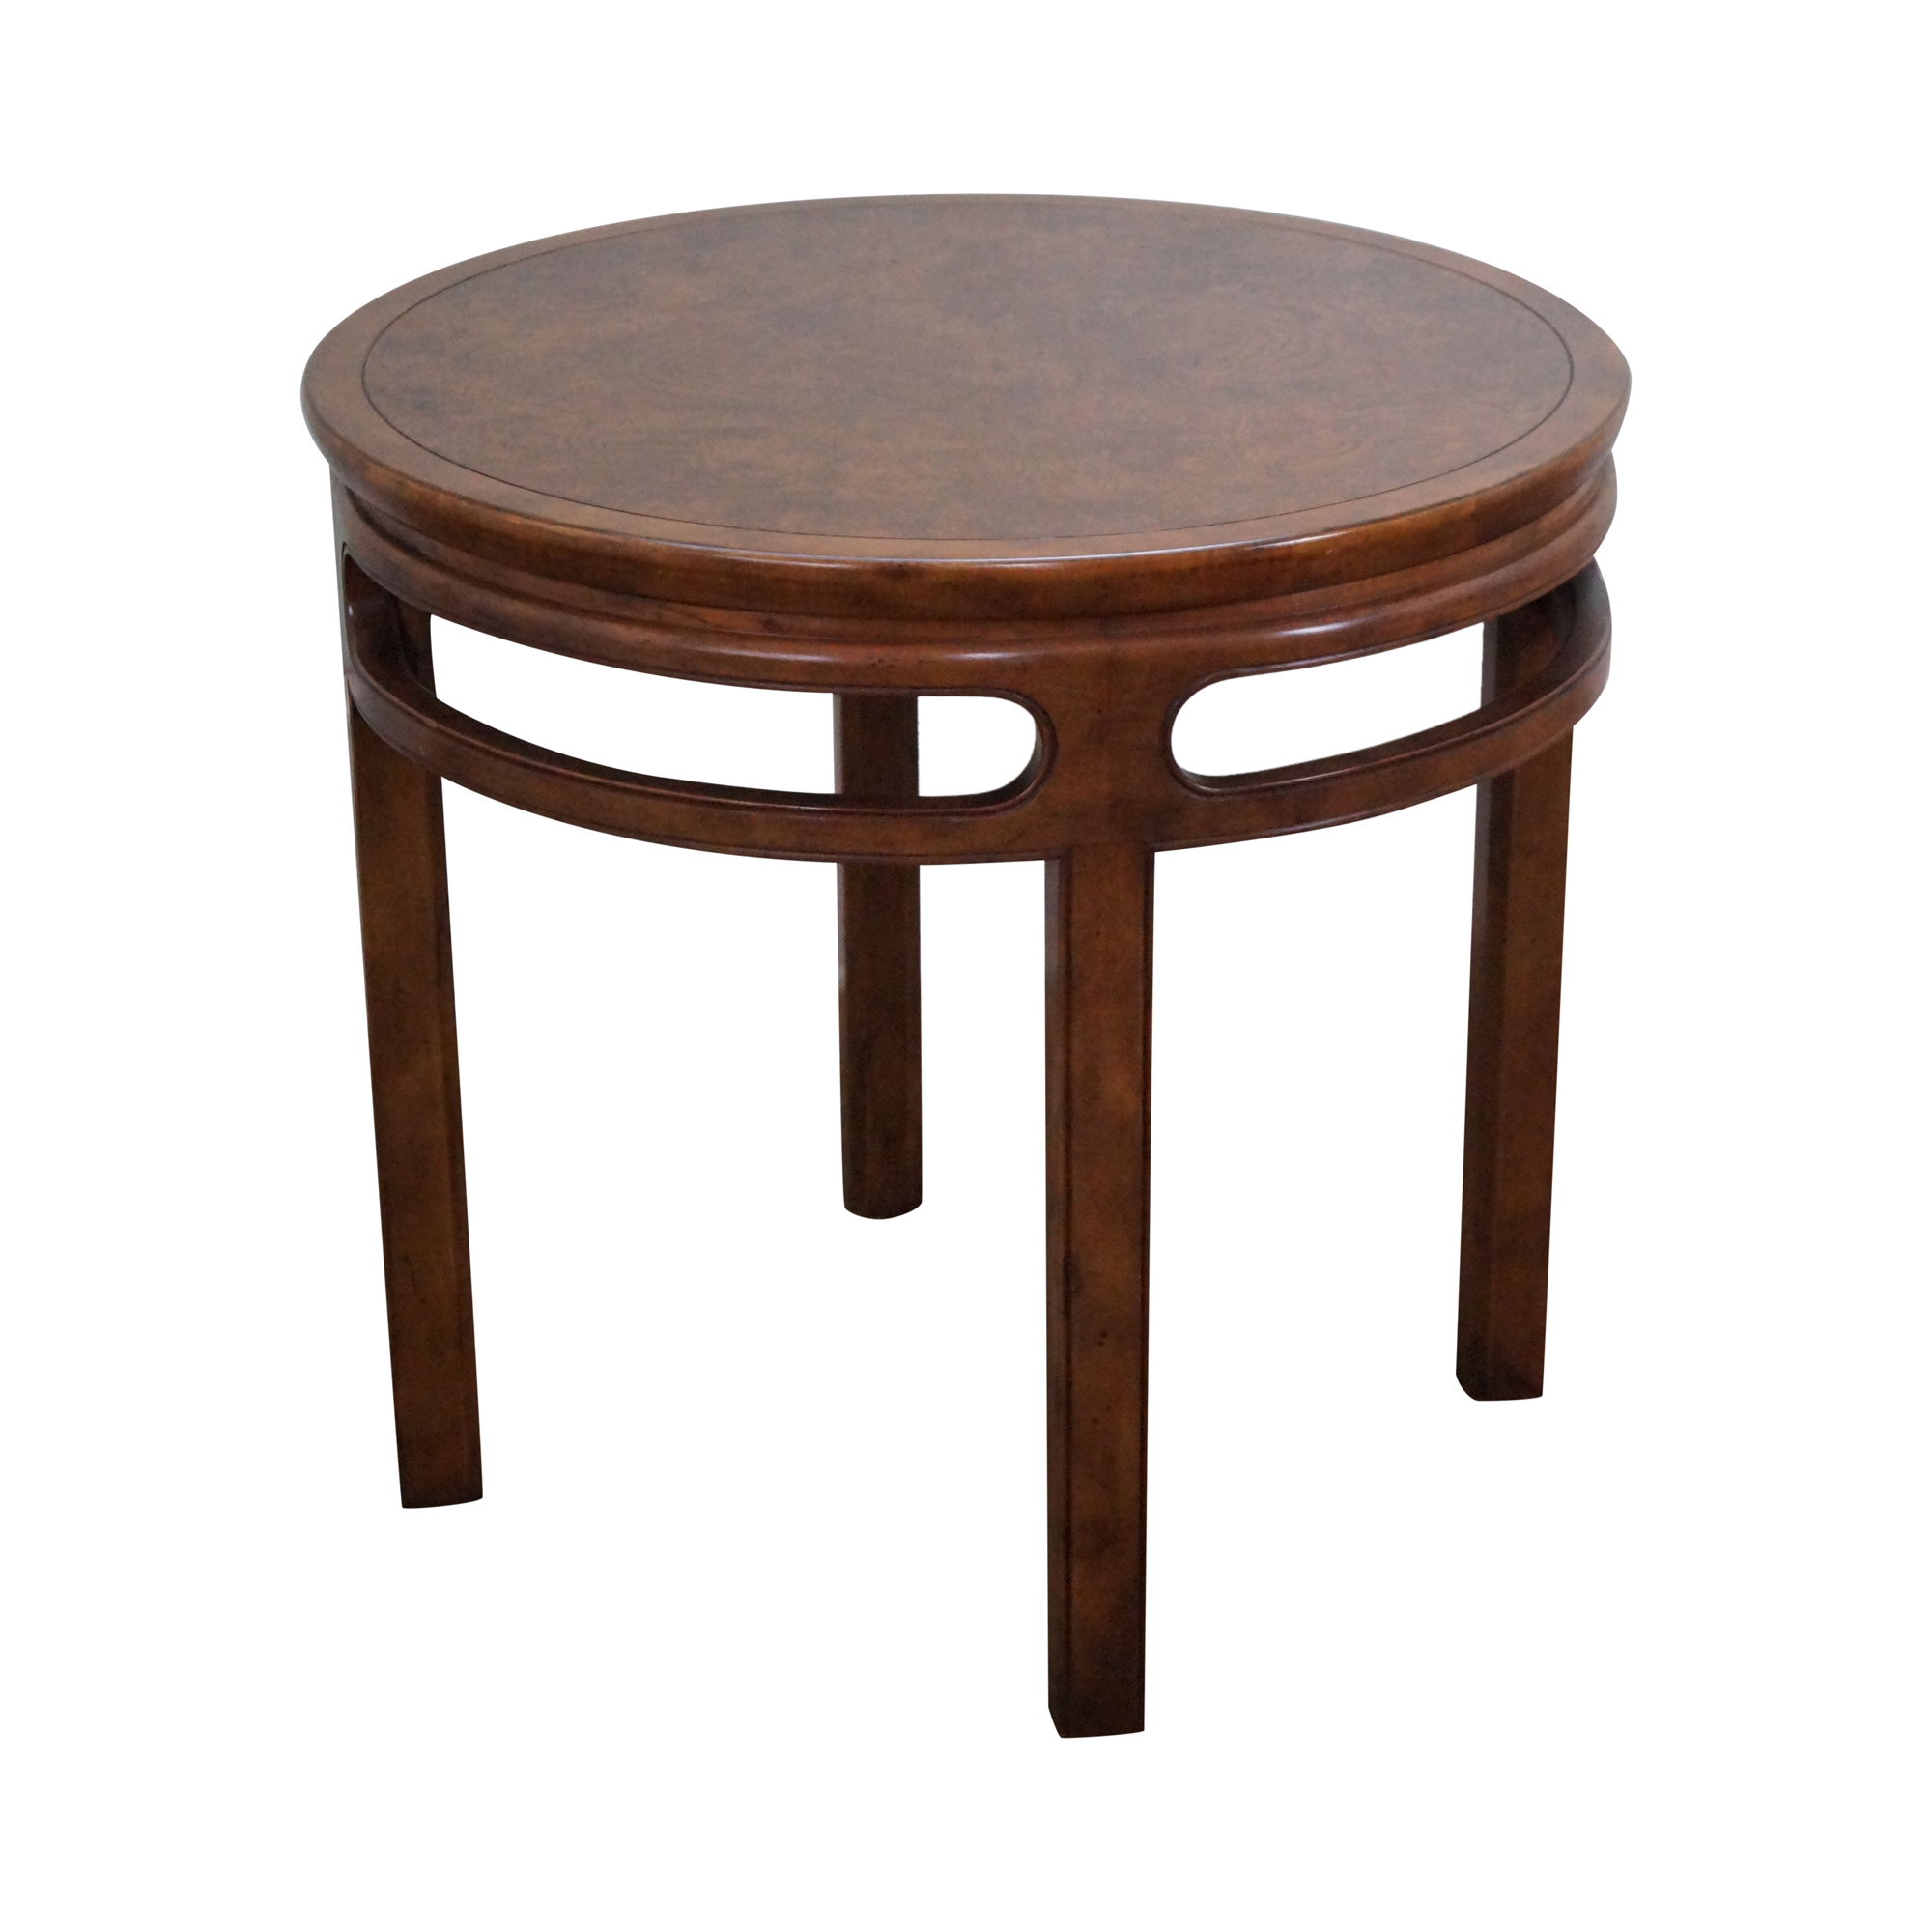 Baker Coffee Table Round: Baker Vintage Asian Inspired Round Side Table